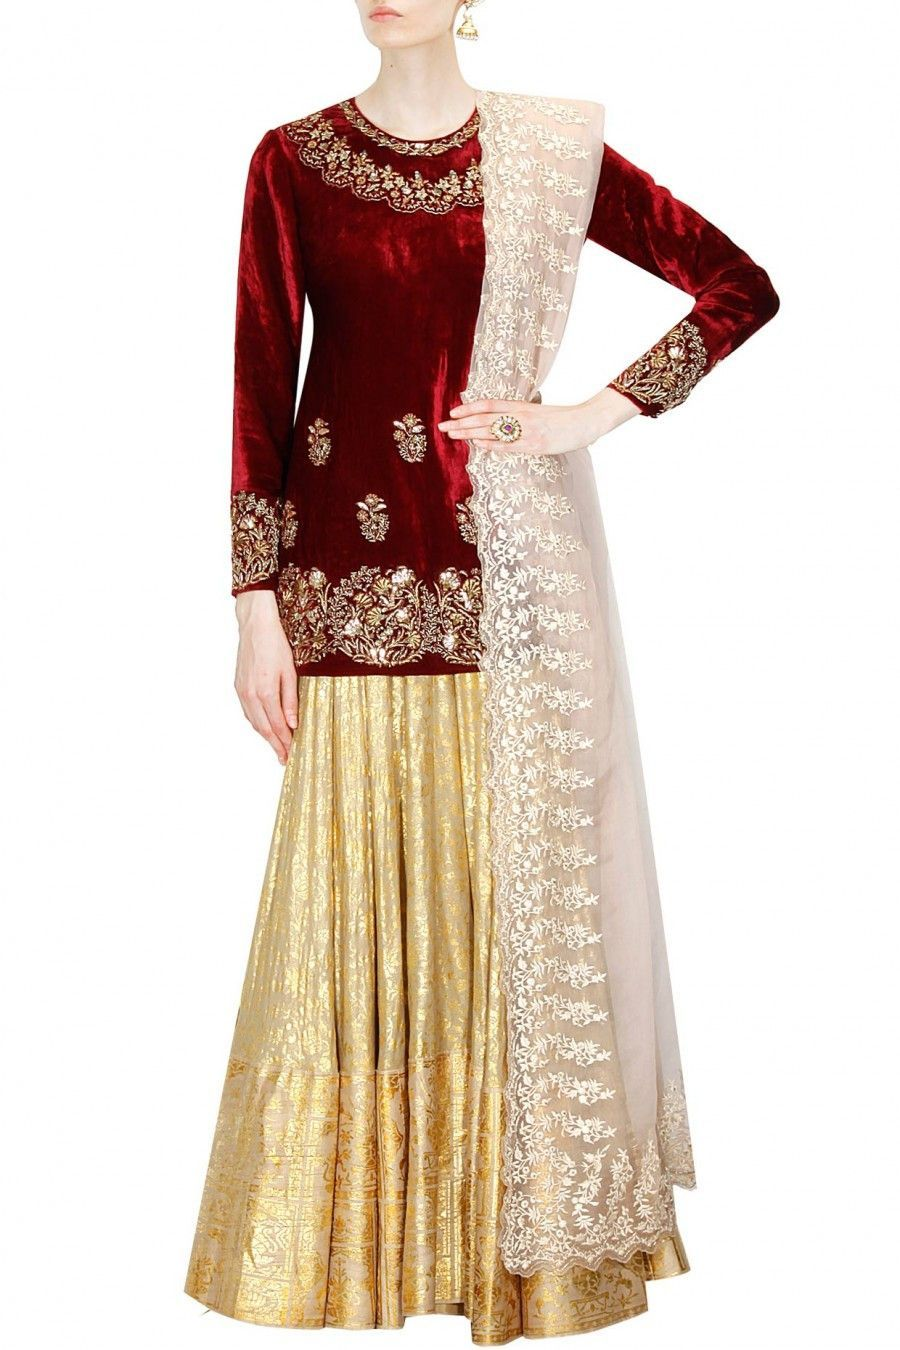 8f112c94d5 This maroon kurta with Golden lehenga set features in velvet handcrafted  with gold and silver sequined and embroidered floral and leaf motifs around  the ...